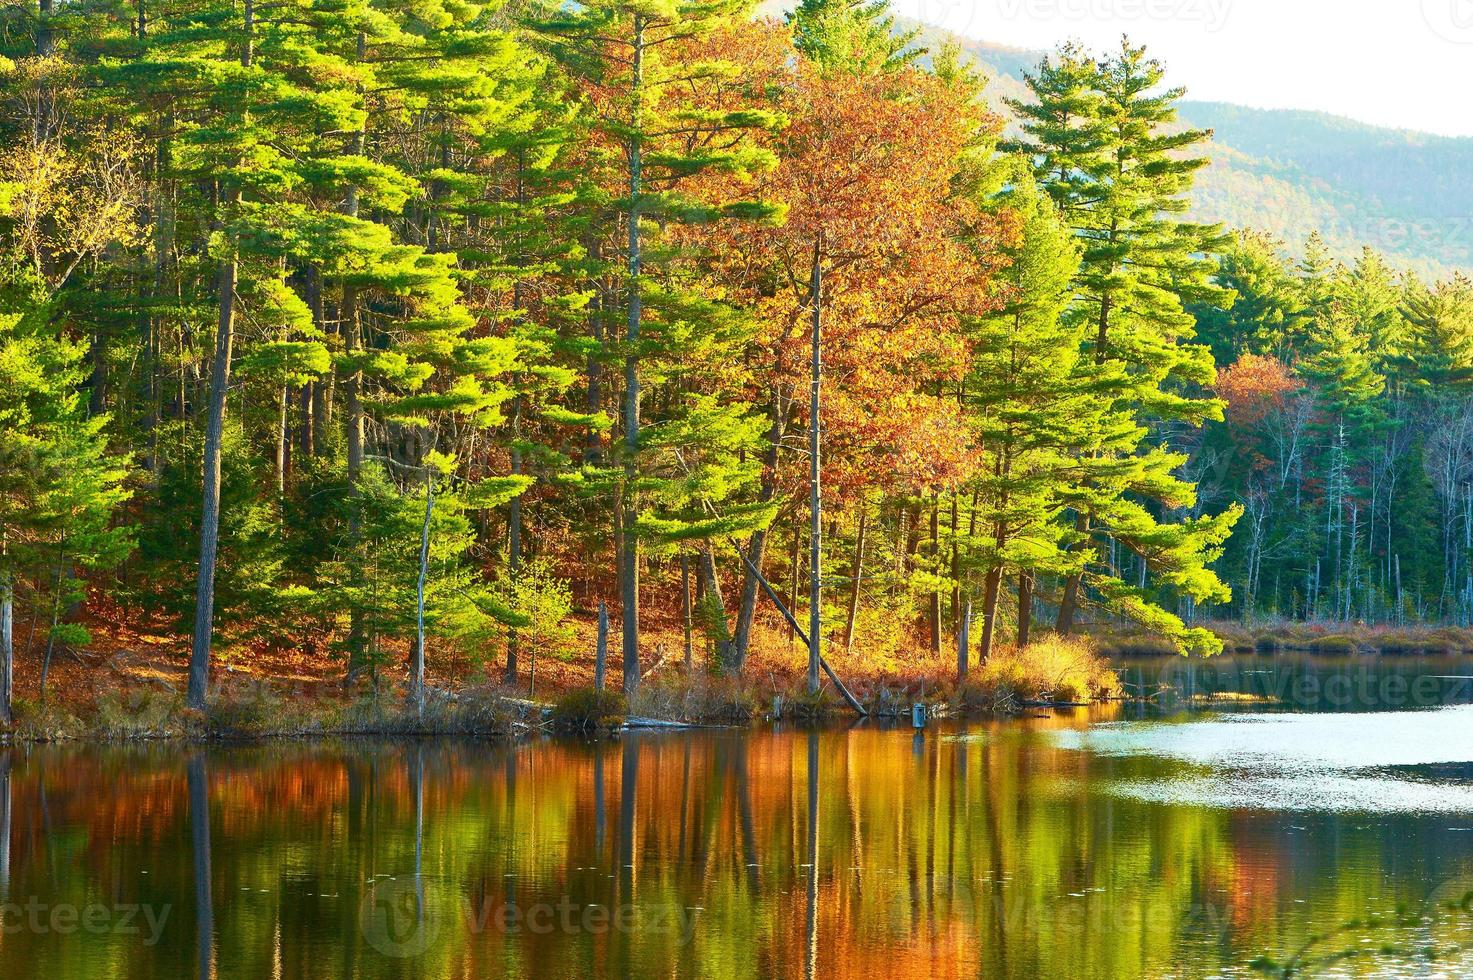 vijver in White Mountain National Forest, New Hampshire foto